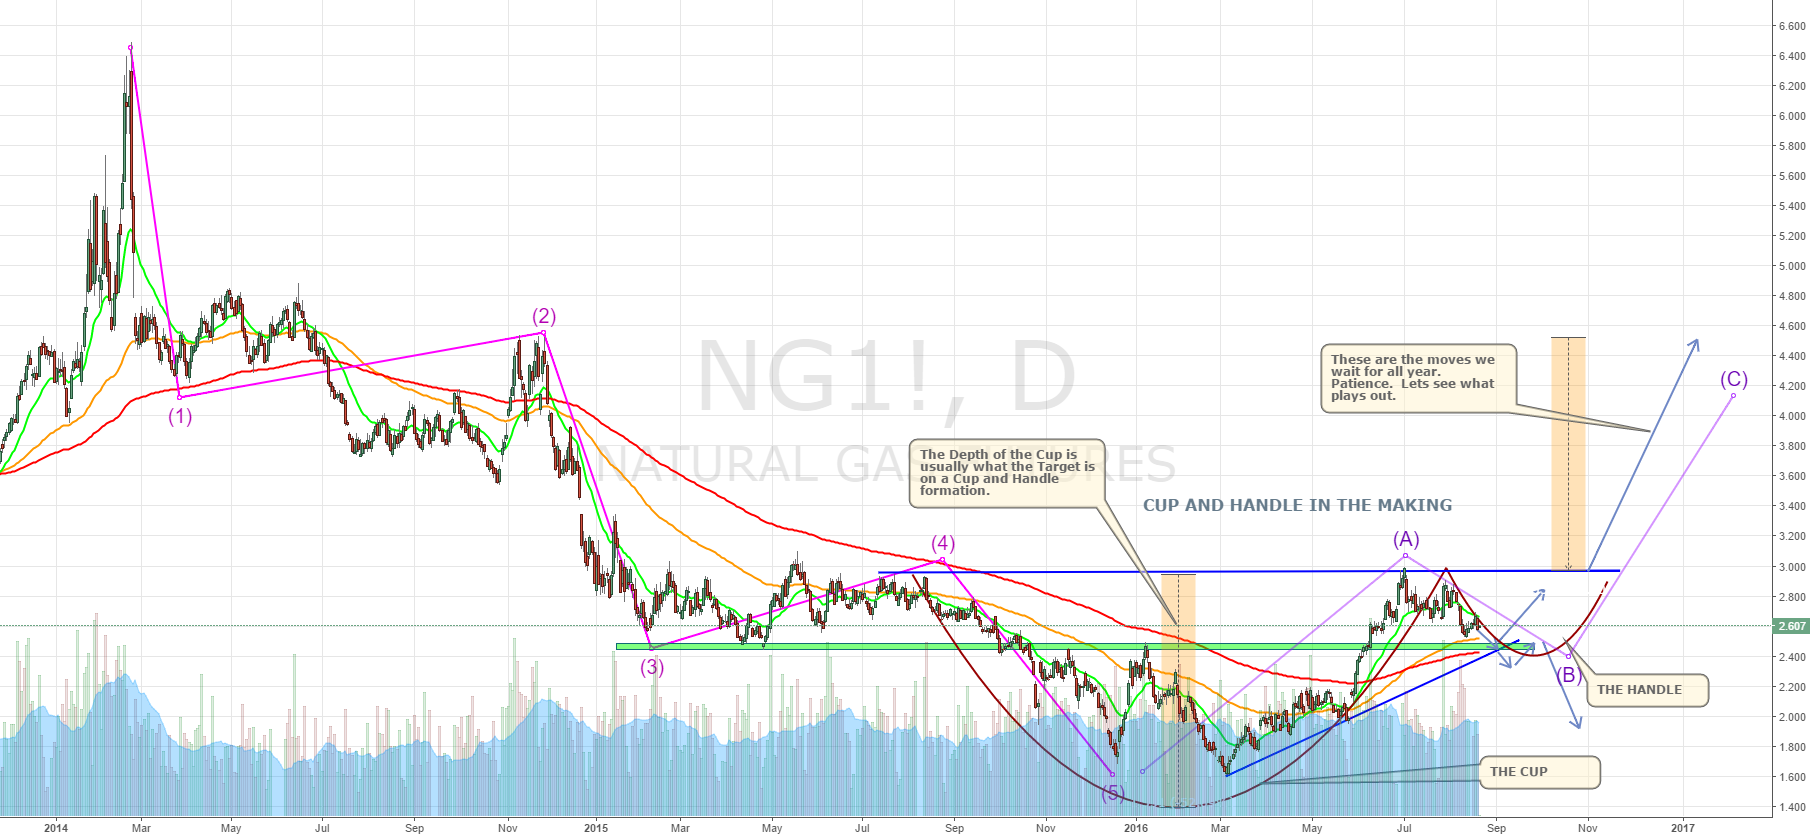 NAT GAS CUP AND HANDLE POISED FOR BIG UP MOVE